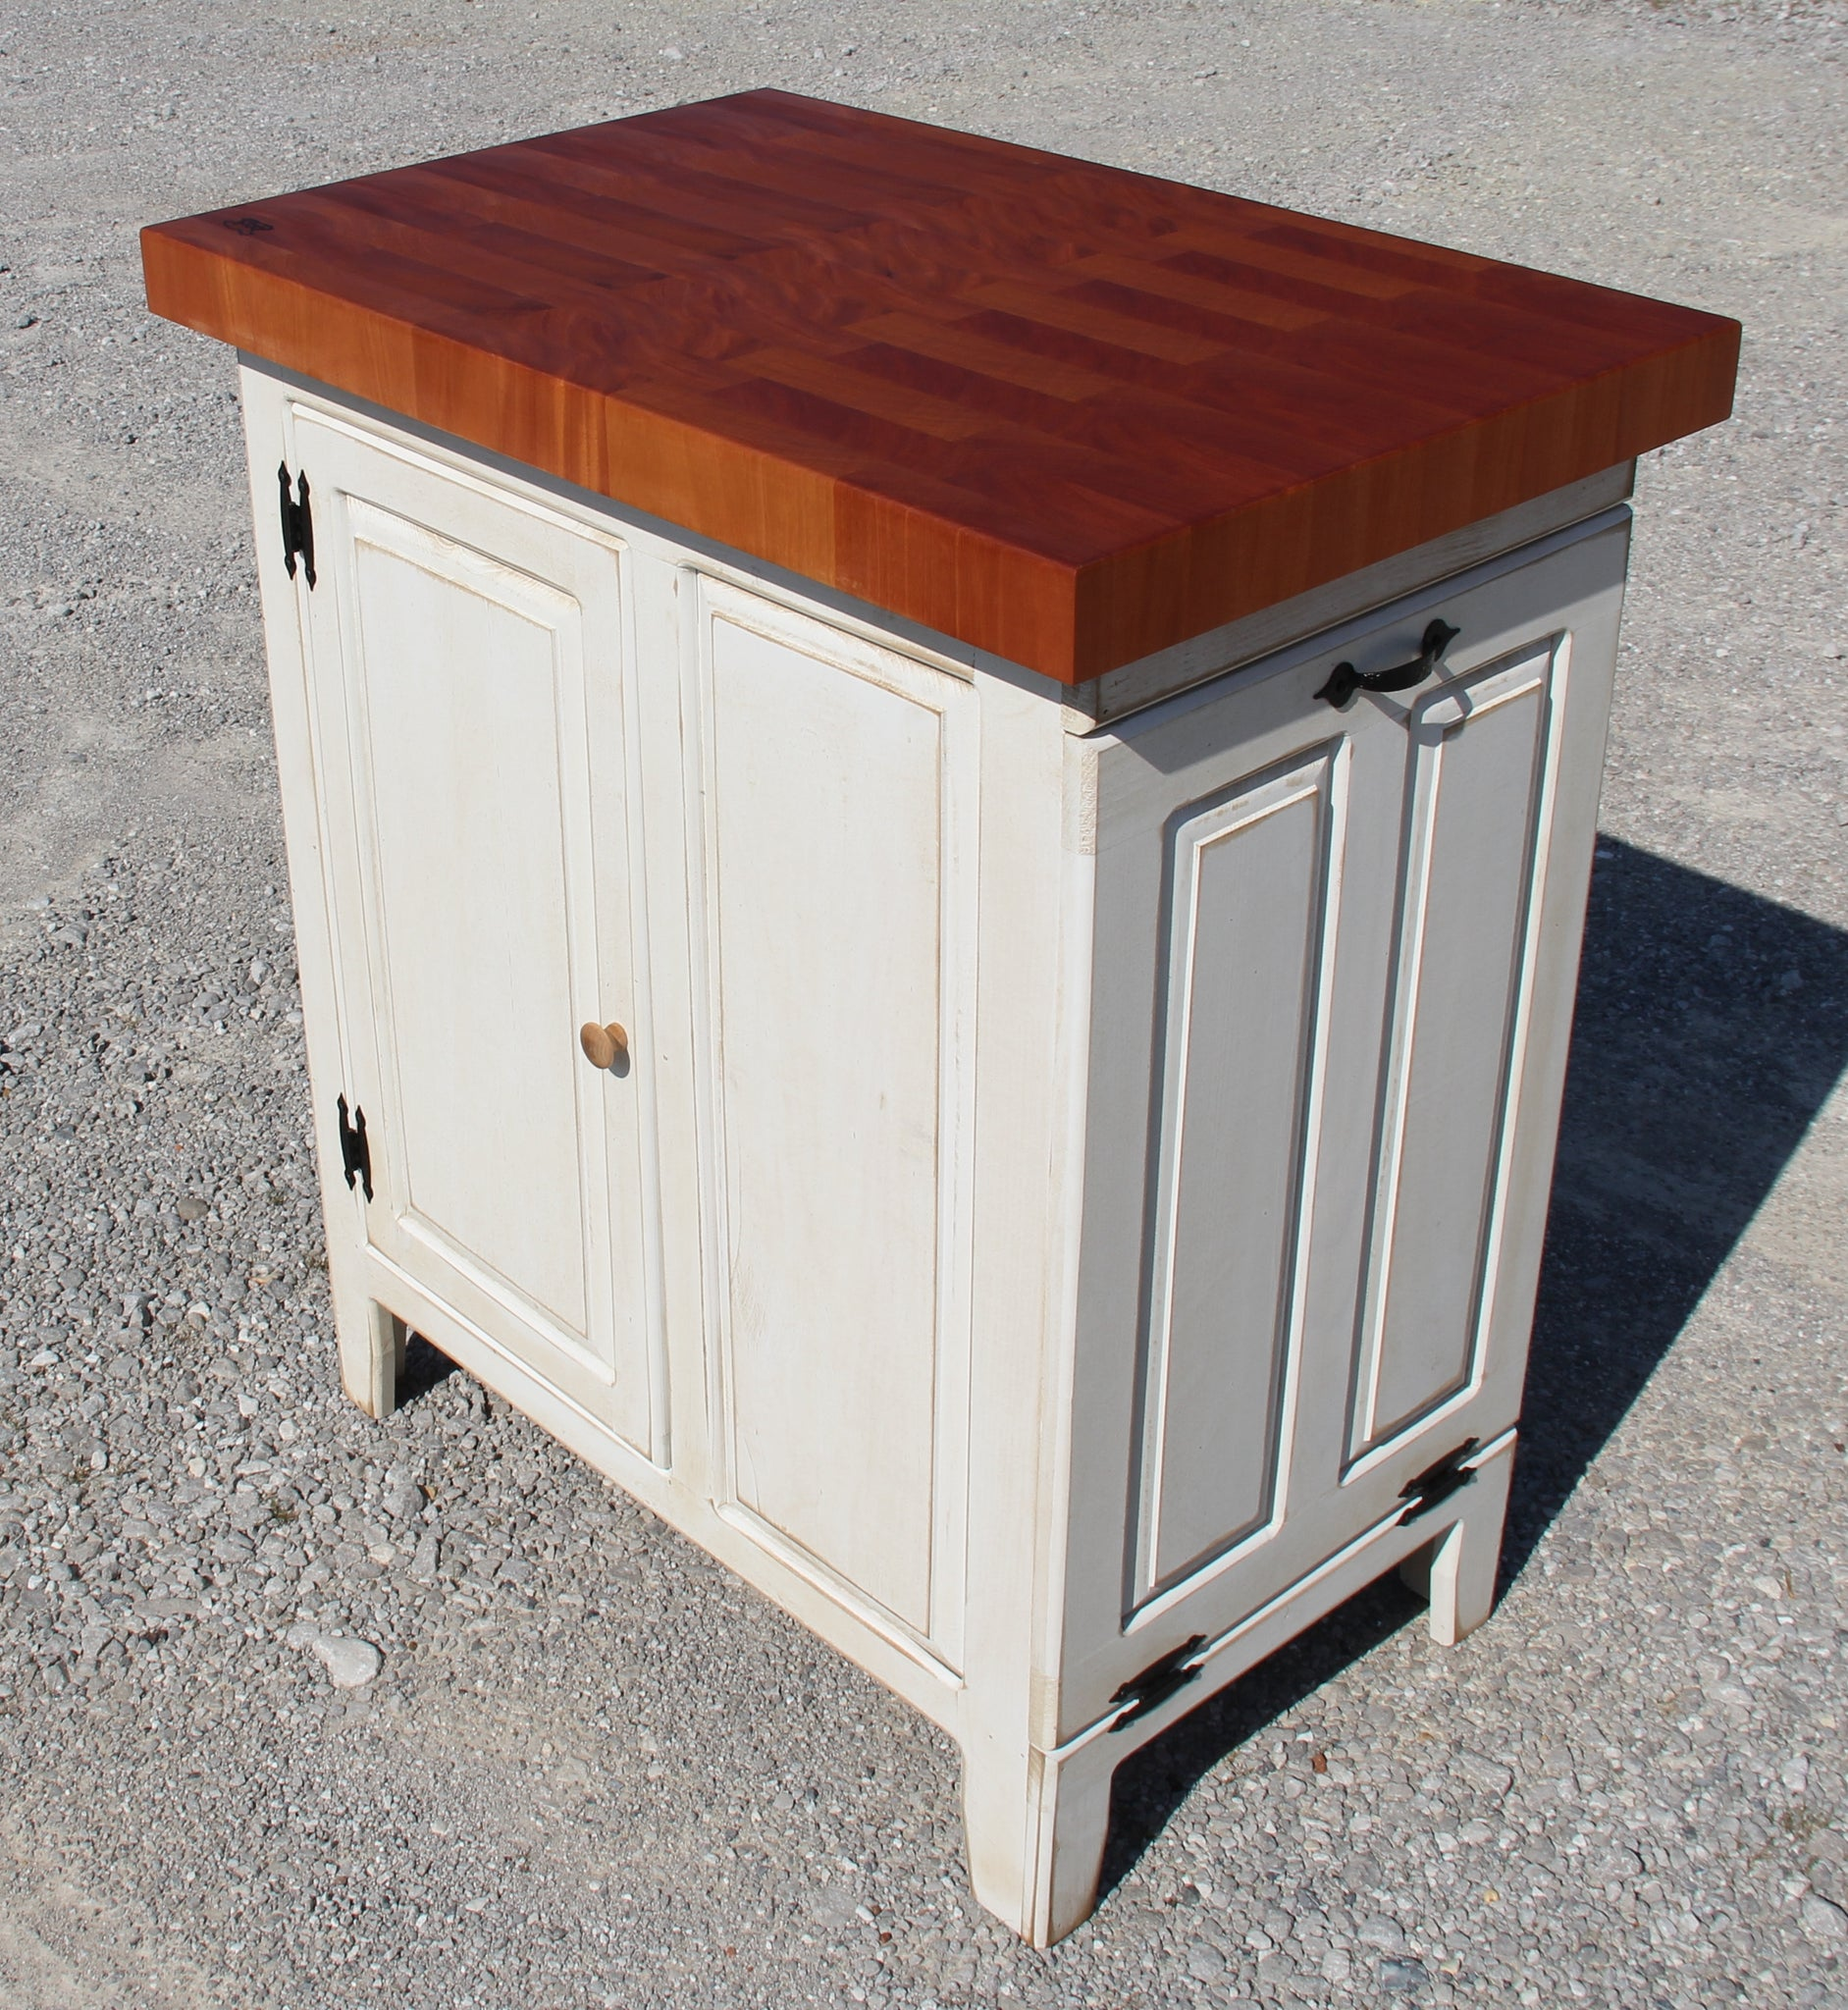 Island--Small Distressed Wood Island 22 x 34  w/Tilt out Trash Can